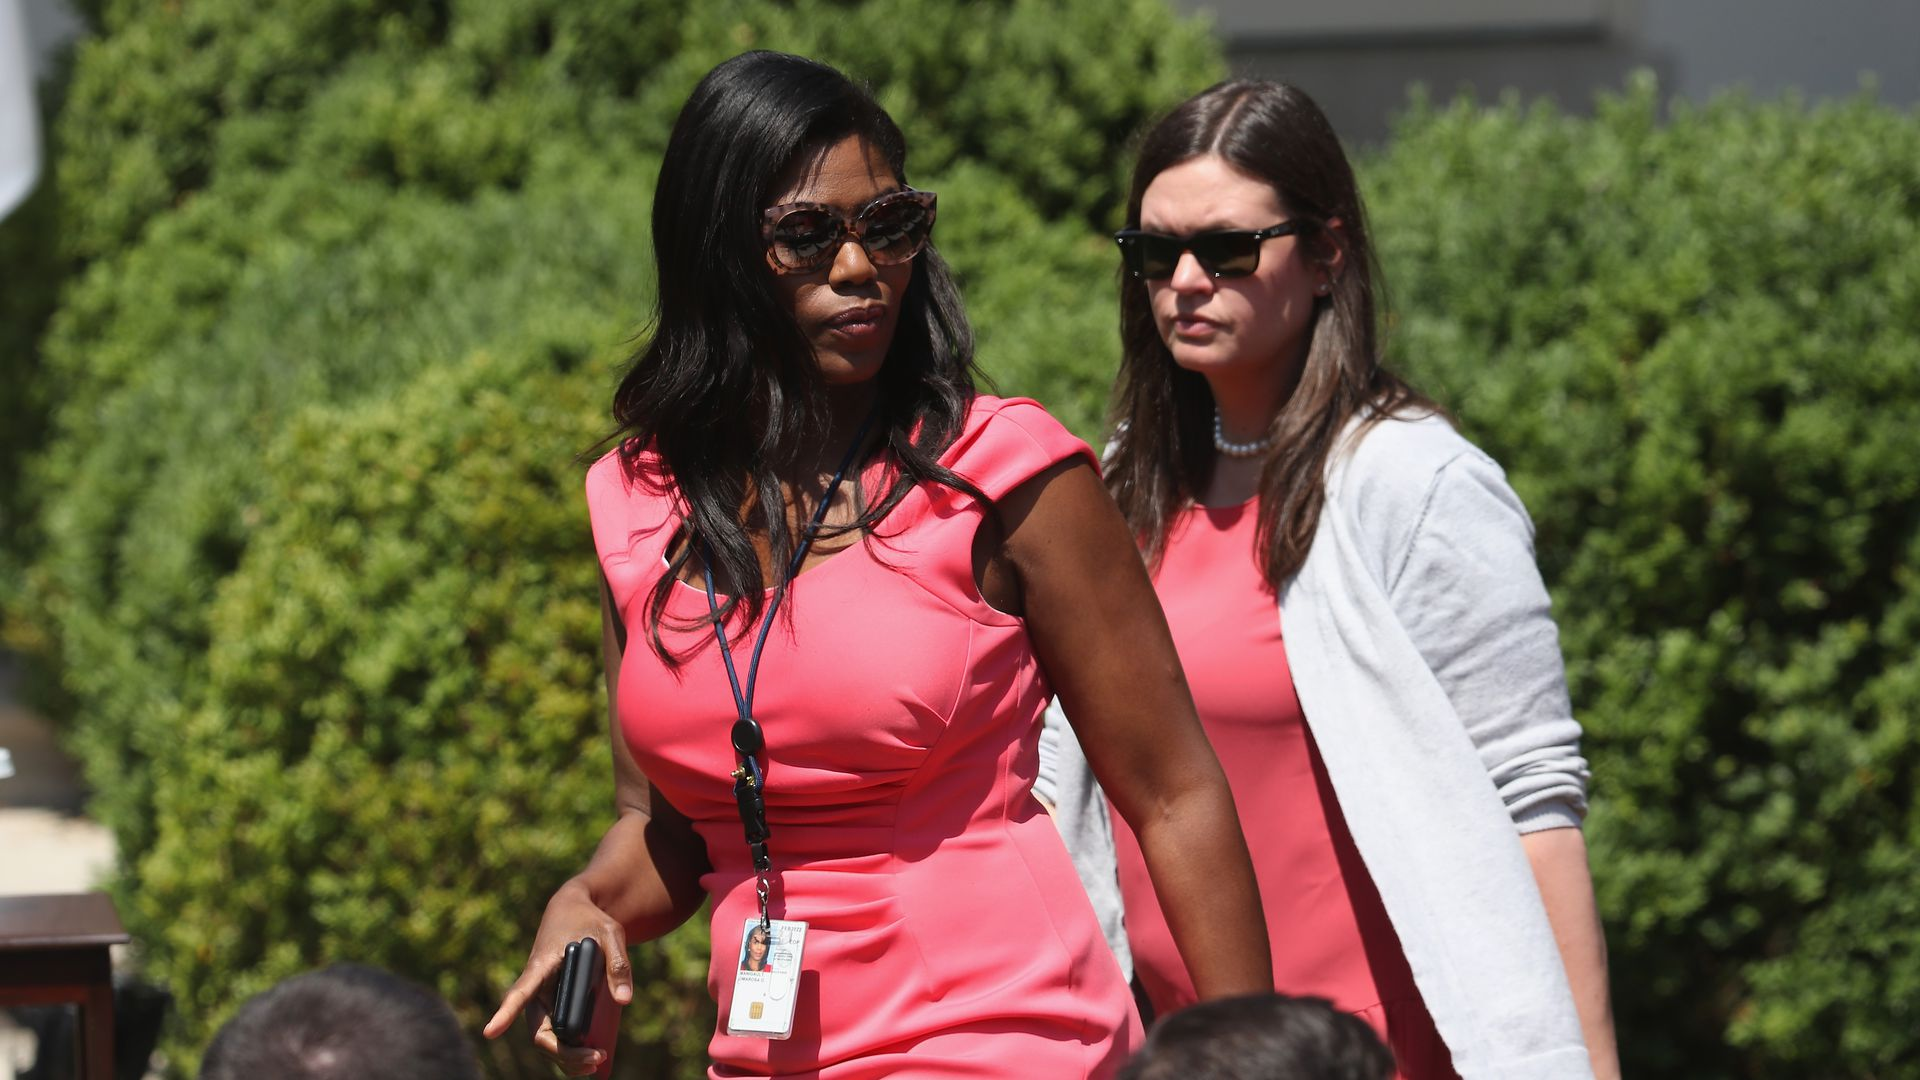 Former President Trump advisor Omarosa Manigault and White House Press Secretary Sarah Huckabee Sanders Photo: Mark Wilson/Getty Images